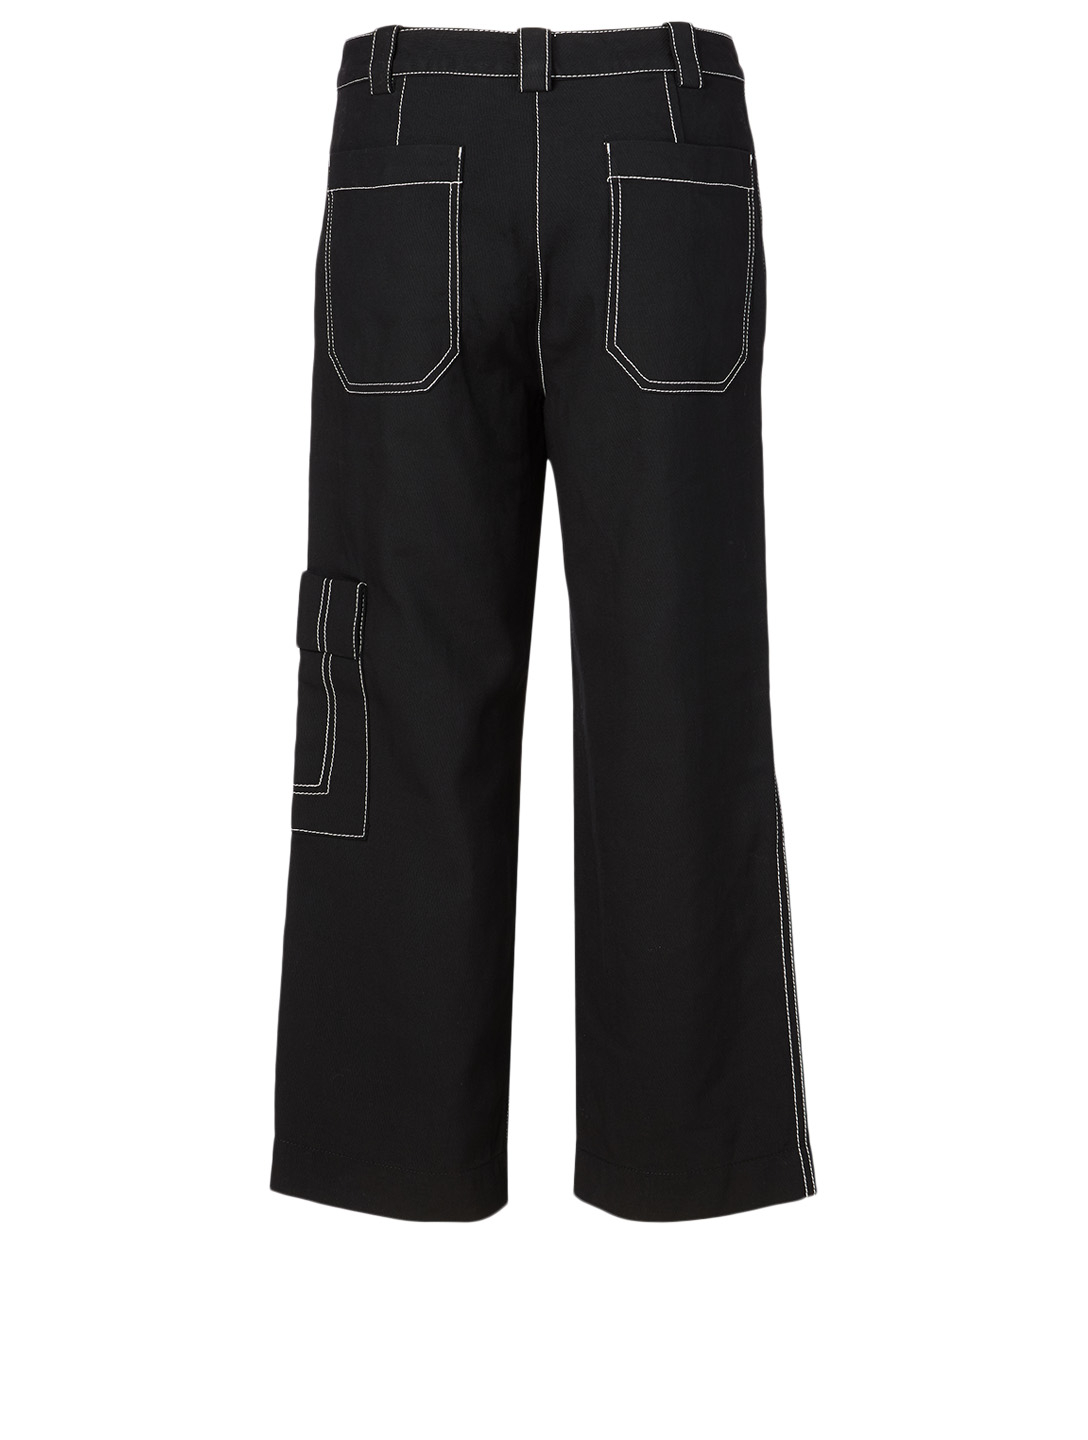 3.1 PHILLIP LIM Cotton And Wool Cargo Pants Women's Black